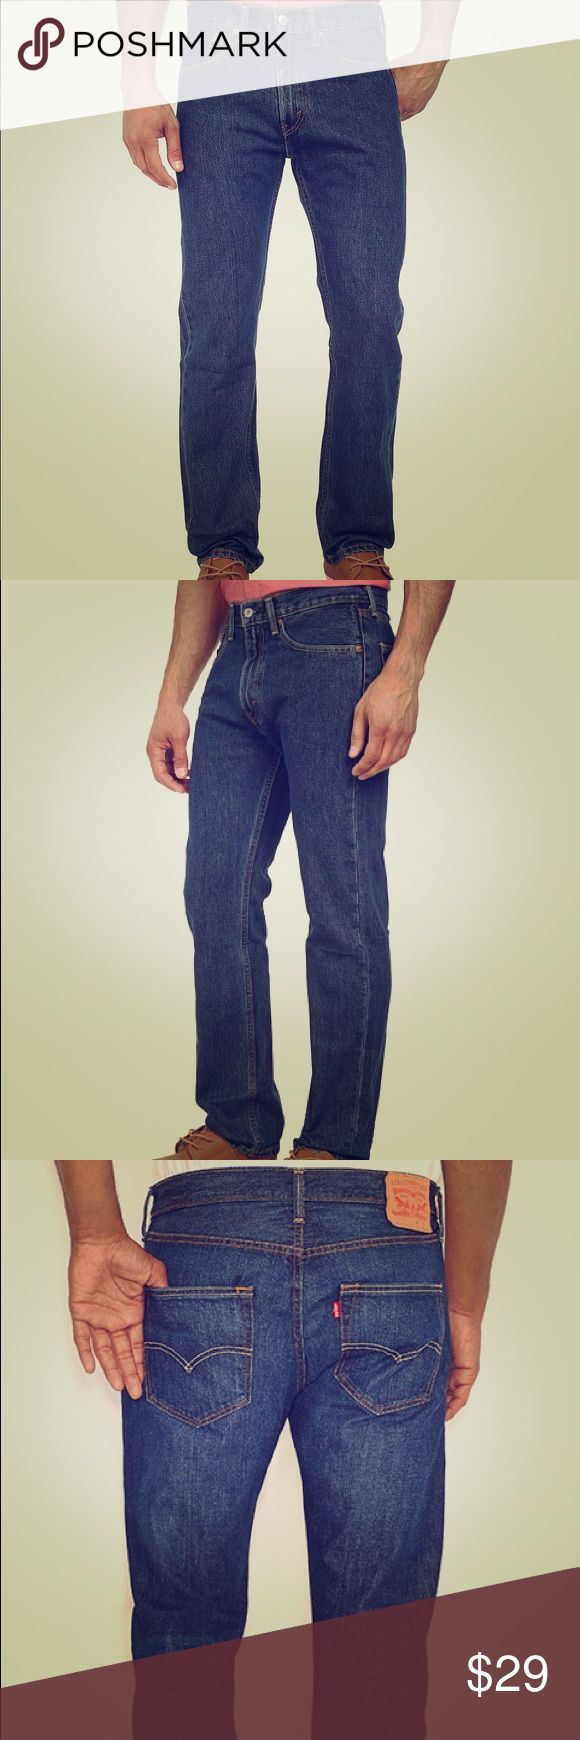 levis 505 mens blue jeans Very comfortable. On trend. Great quality and flawless Levi's 505 jeans. Levi's Jeans Boot Cut